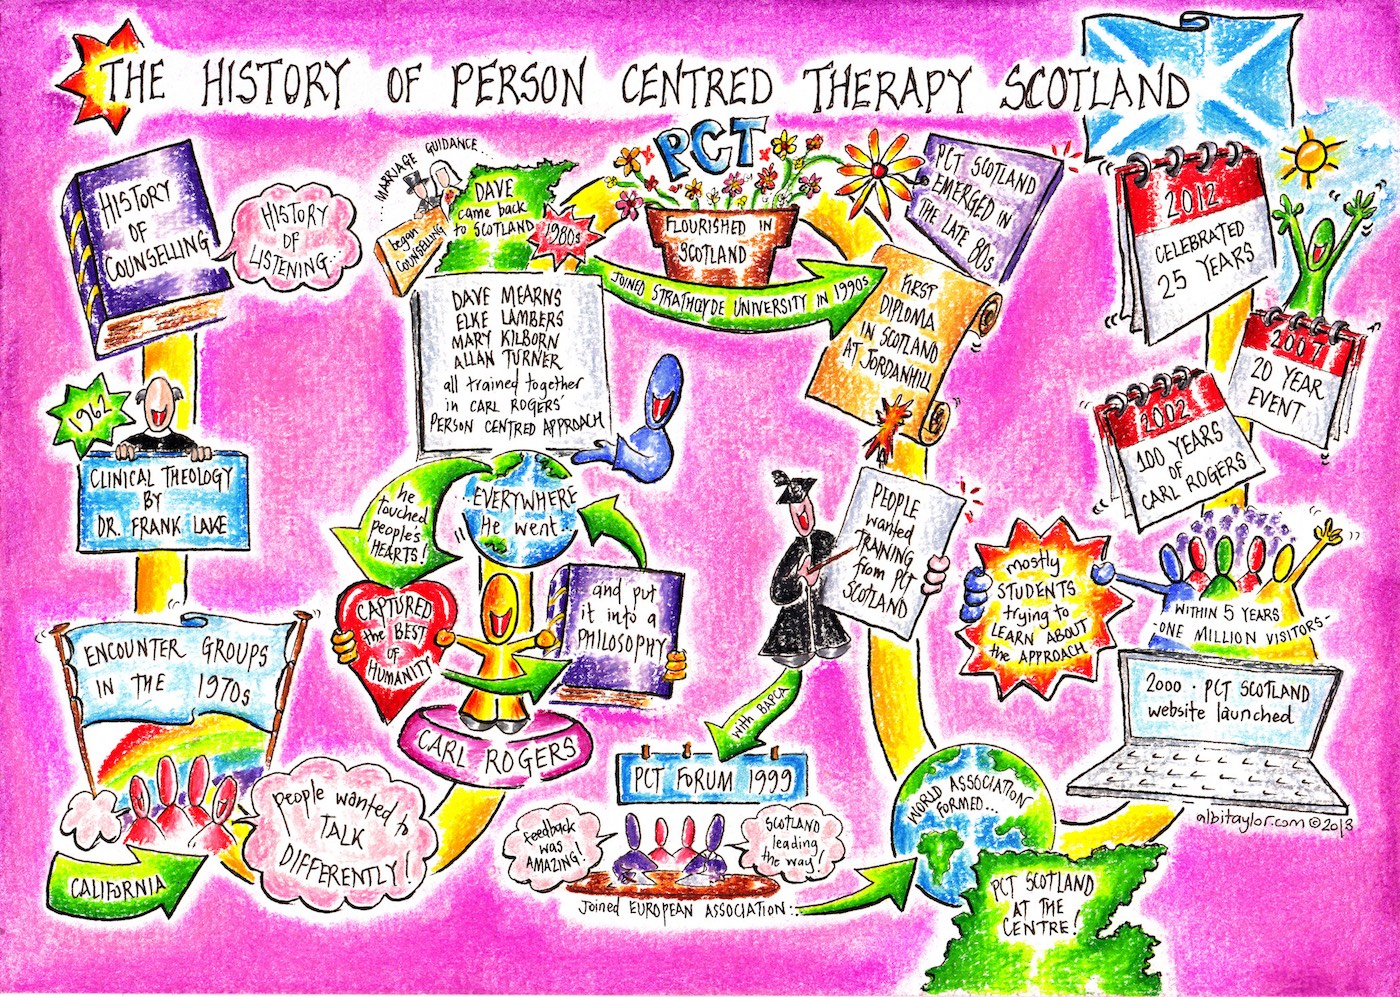 The history of Person-Centered Therapy Scotland